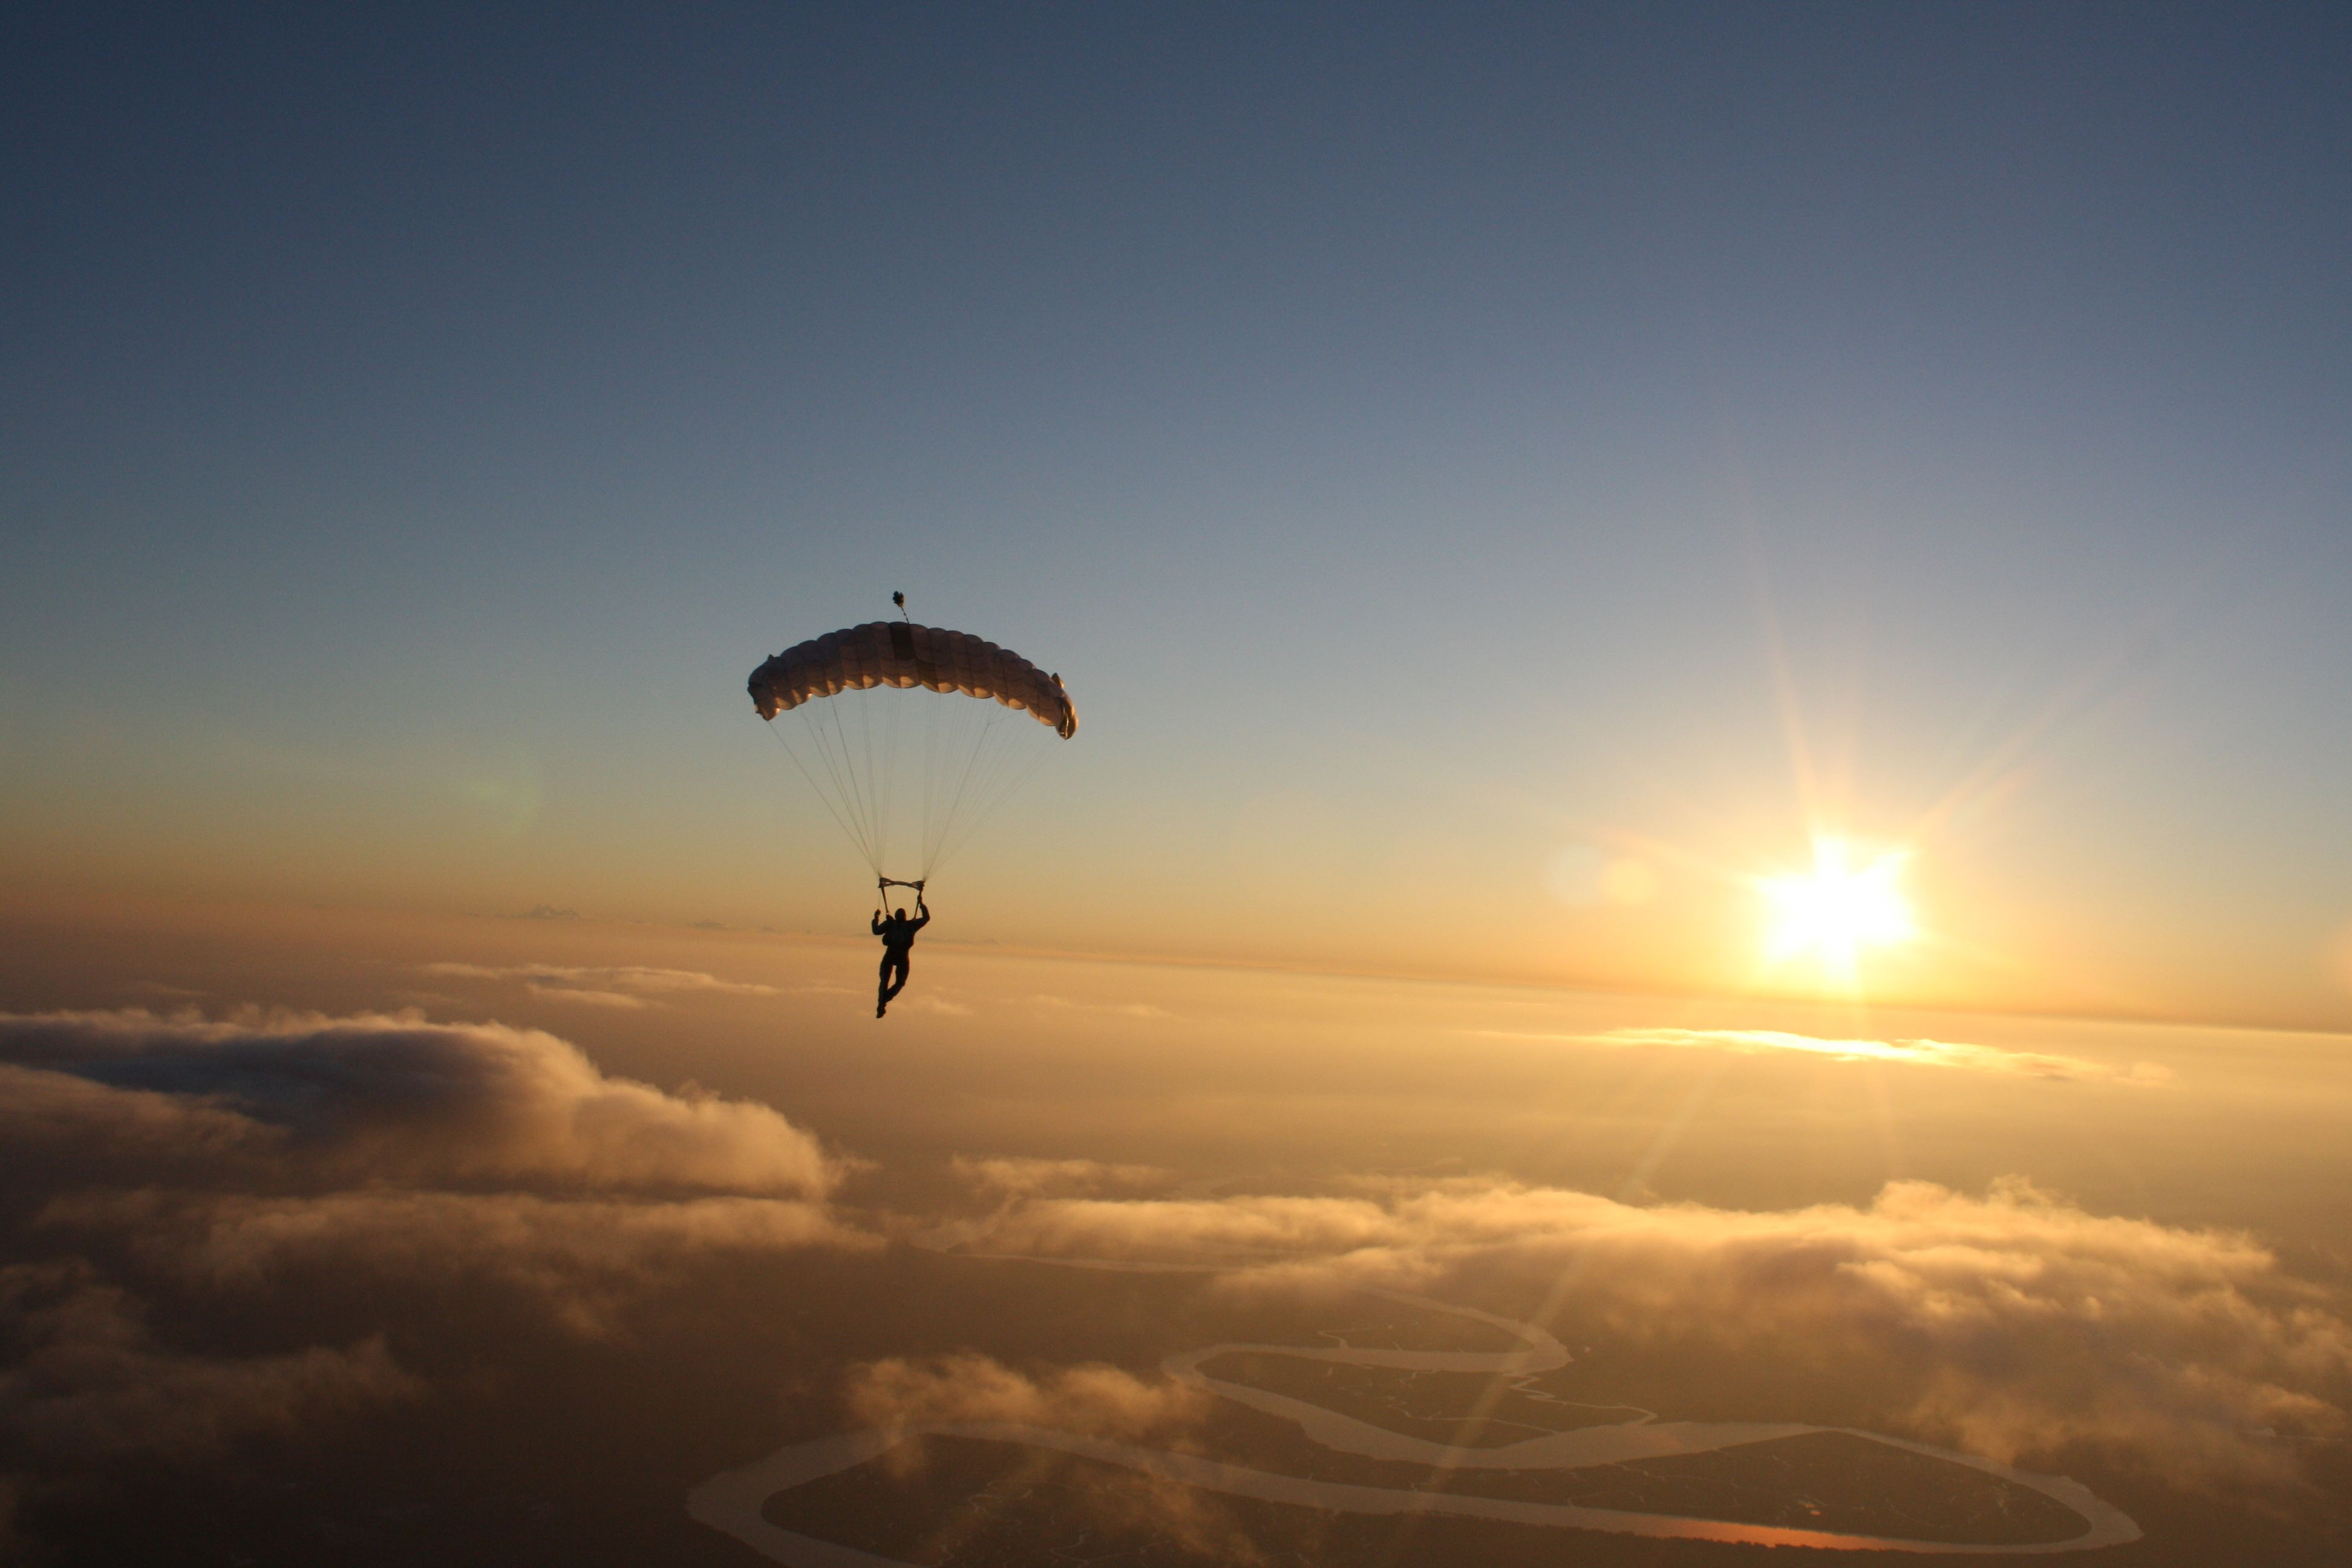 Skydiving Wallpapers - Top Free Skydiving Backgrounds - WallpaperAccess